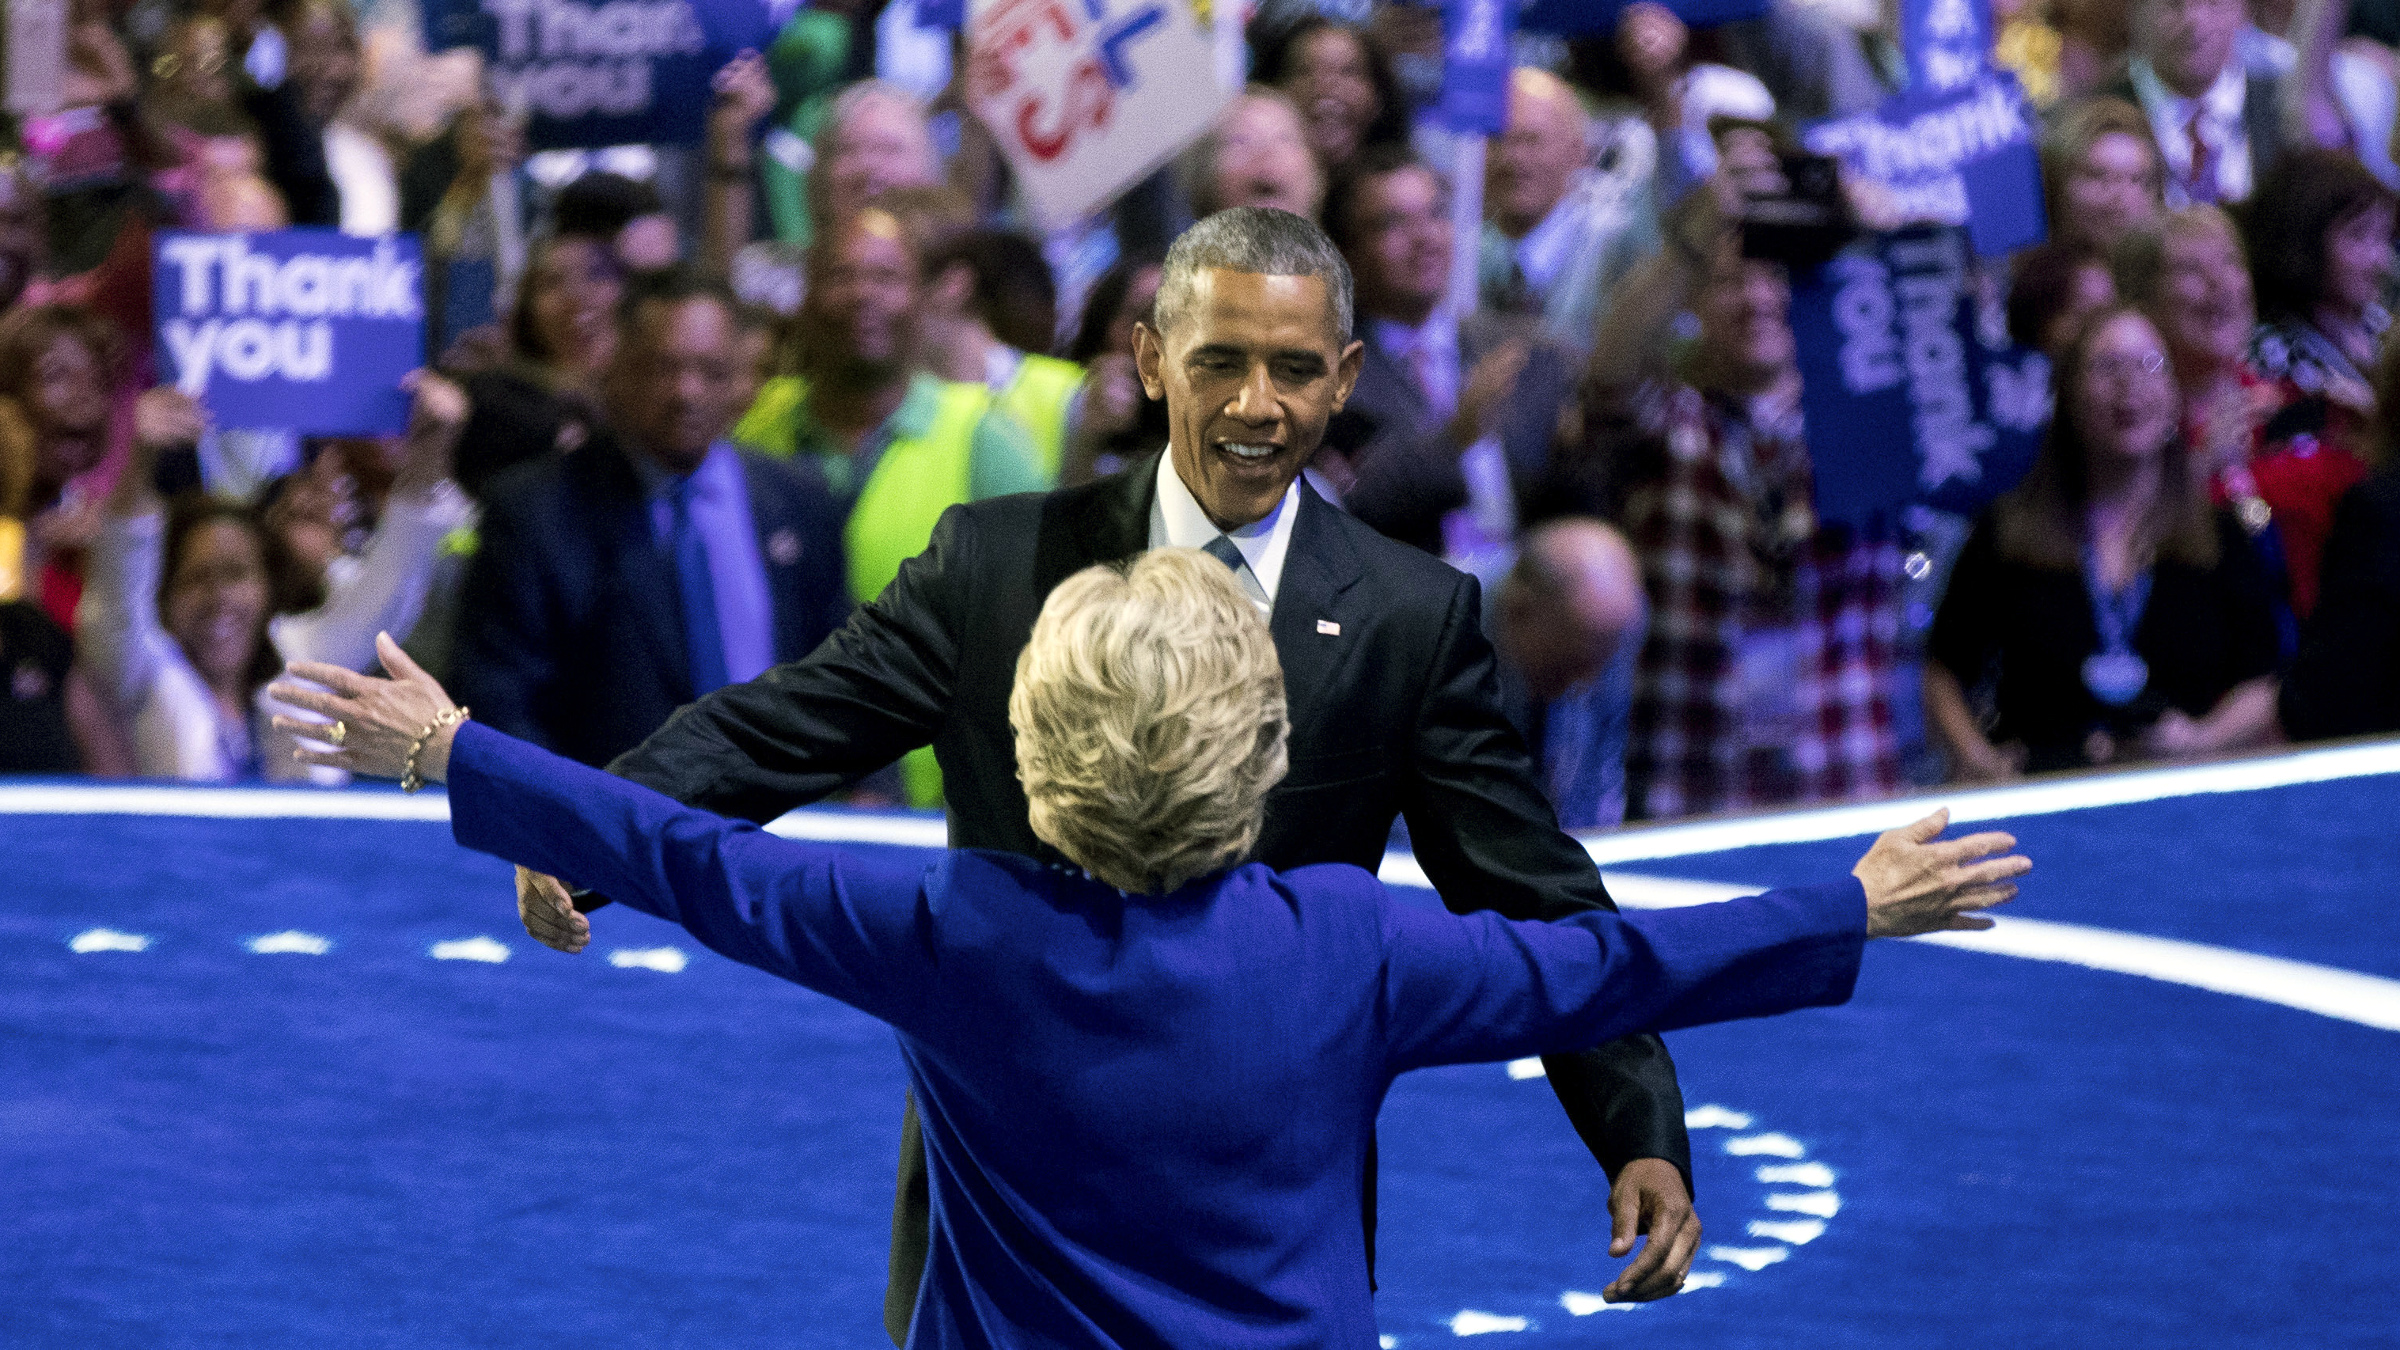 President Barack Obama and Democratic presidential candidate Hillary Clinton embrace as they appear on stage together on the third day session of the Democratic National Convention in Philadelphia , Wednesday, July 27, 2016.